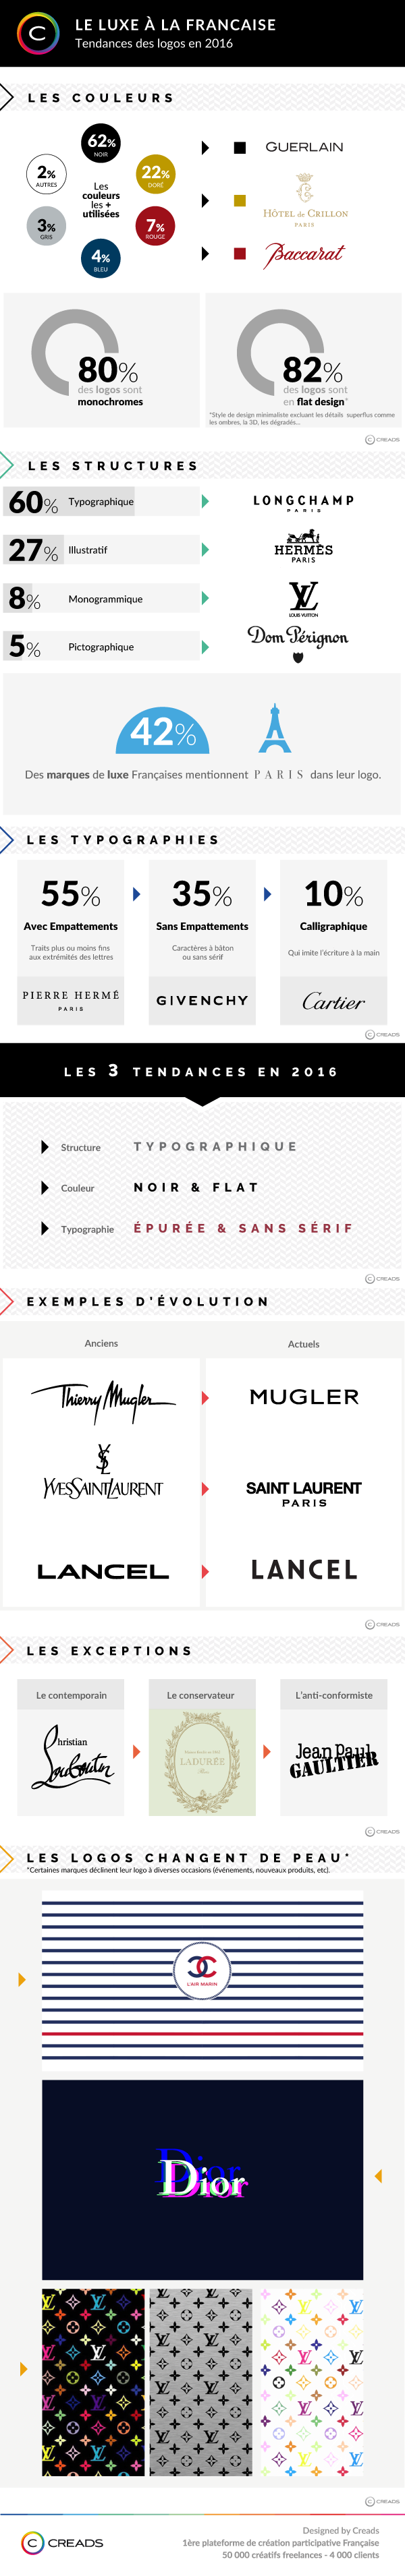 Creads_Infographie_Luxe